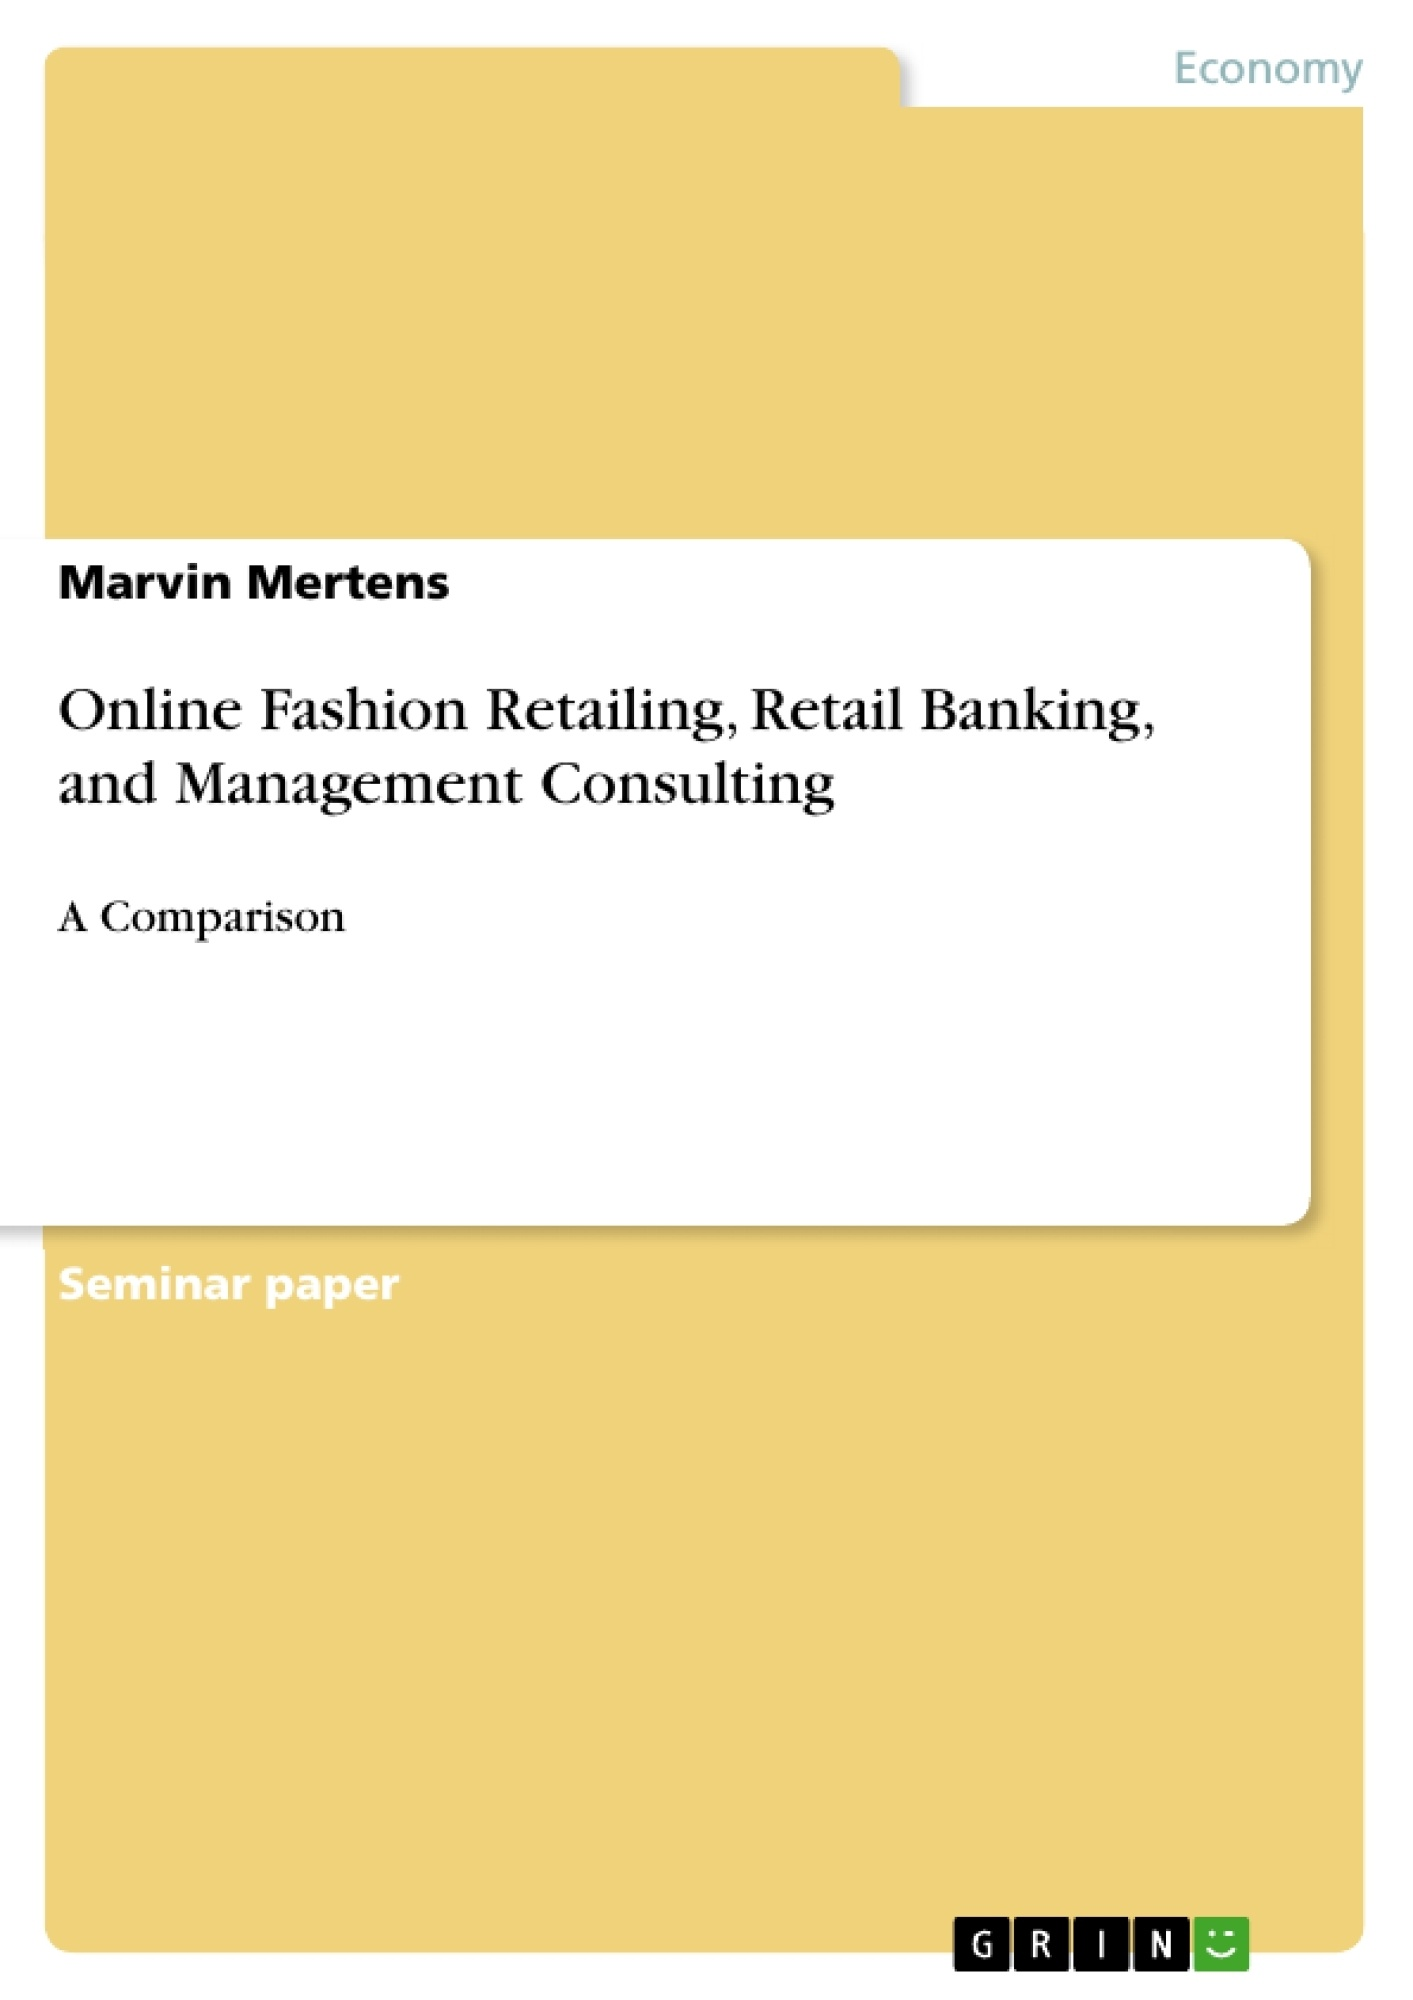 Title: Online Fashion Retailing, Retail Banking, and Management Consulting